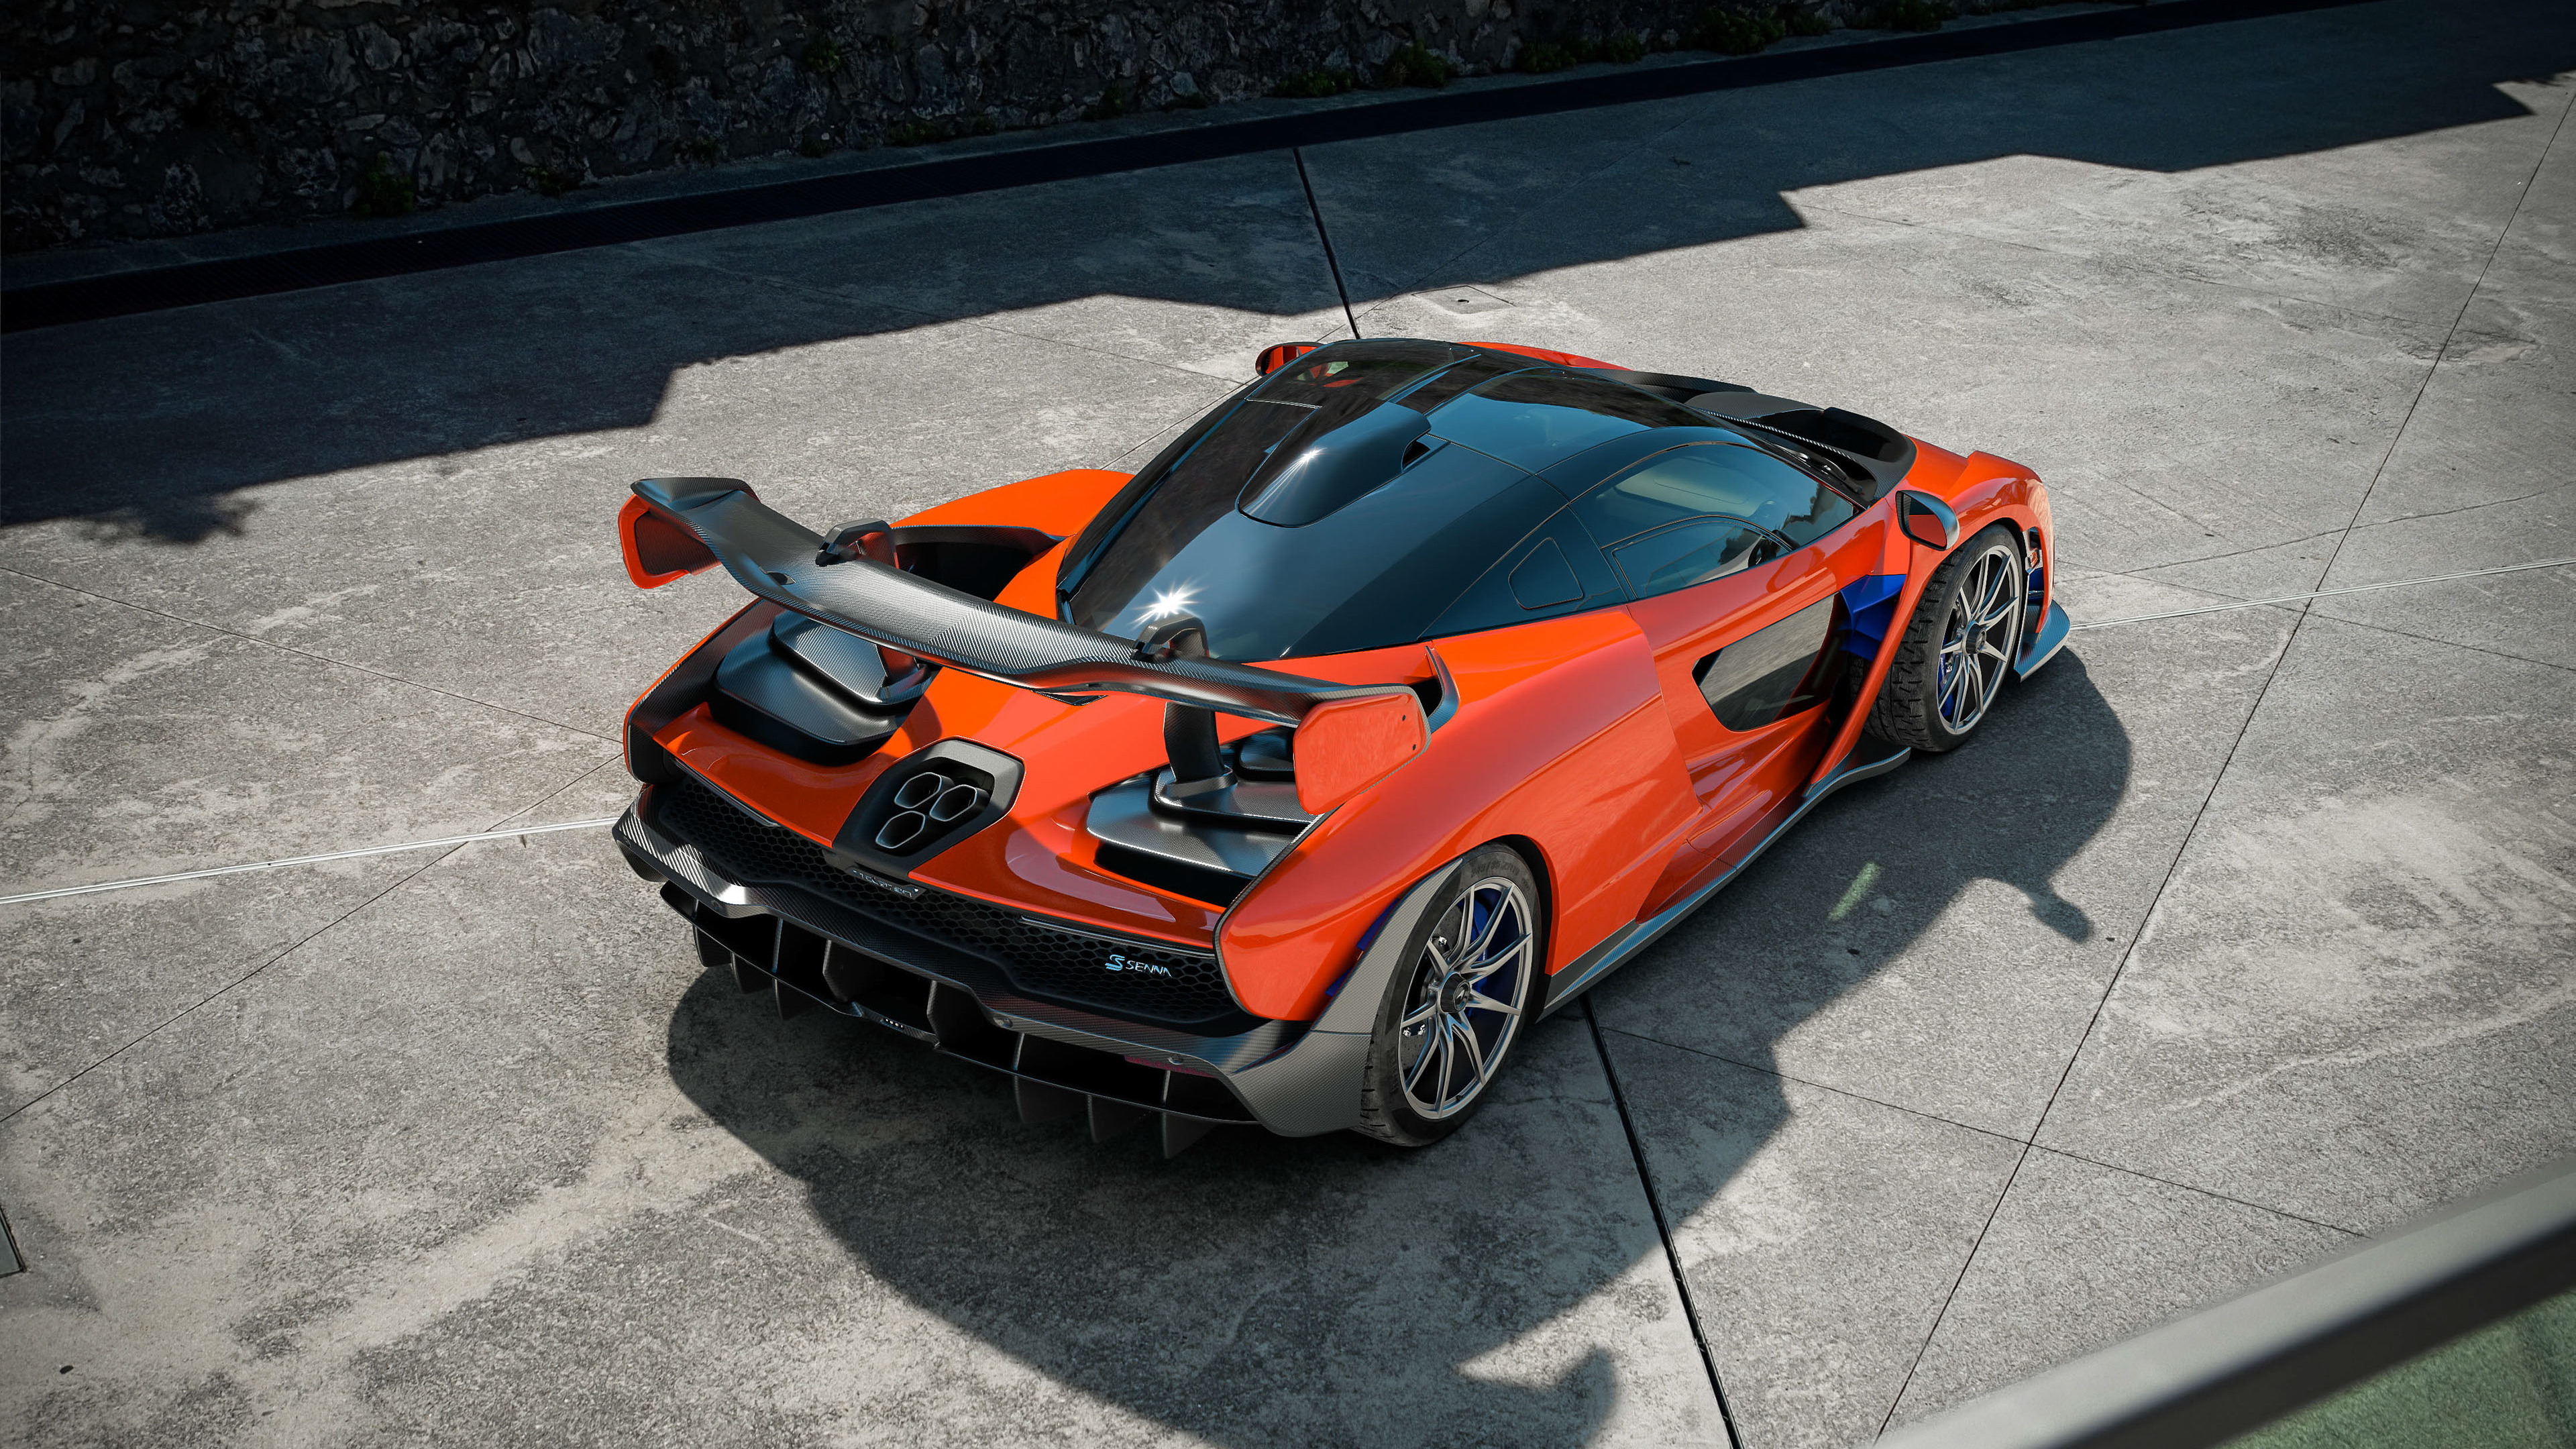 mclaren senna new 2019 4k 1550512904 - Mclaren Senna New 2019 4k - mclaren wallpapers, mclaren senna wallpapers, hd-wallpapers, cars wallpapers, behance wallpapers, 4k-wallpapers, 2019 cars wallpapers